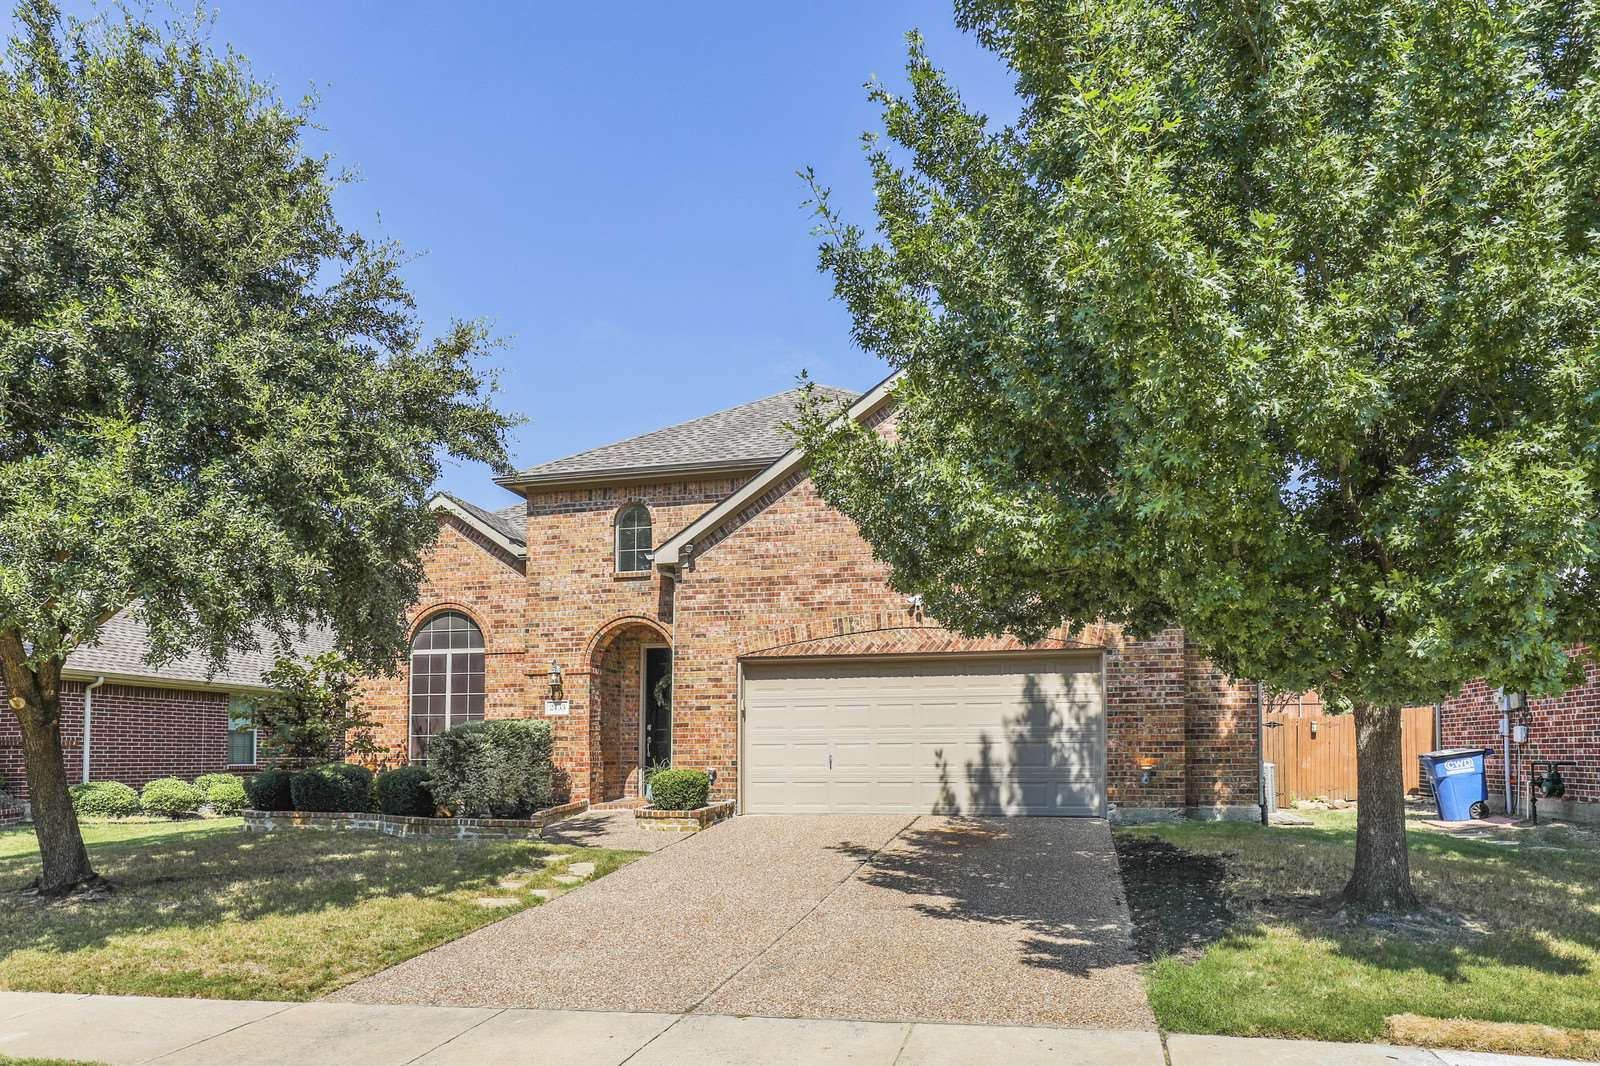 2433 Dove Creek Dr., Little Elm, TX 75068